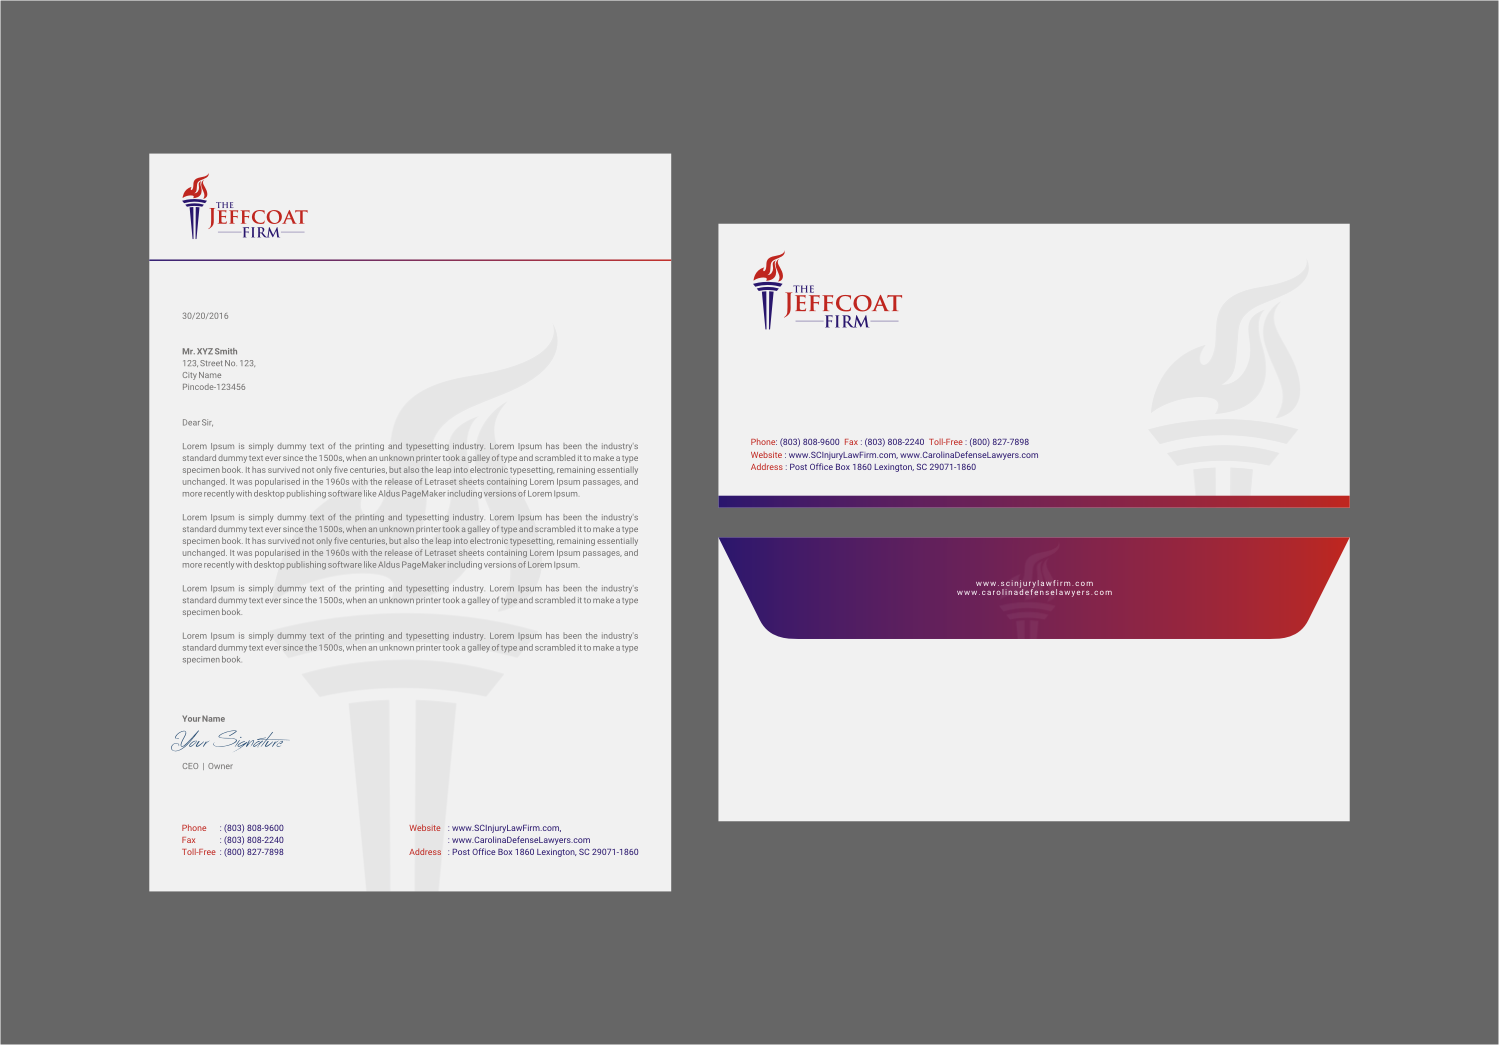 Serious Professional Legal Stationery Design For A Company By Indian Ashok Design 15660806